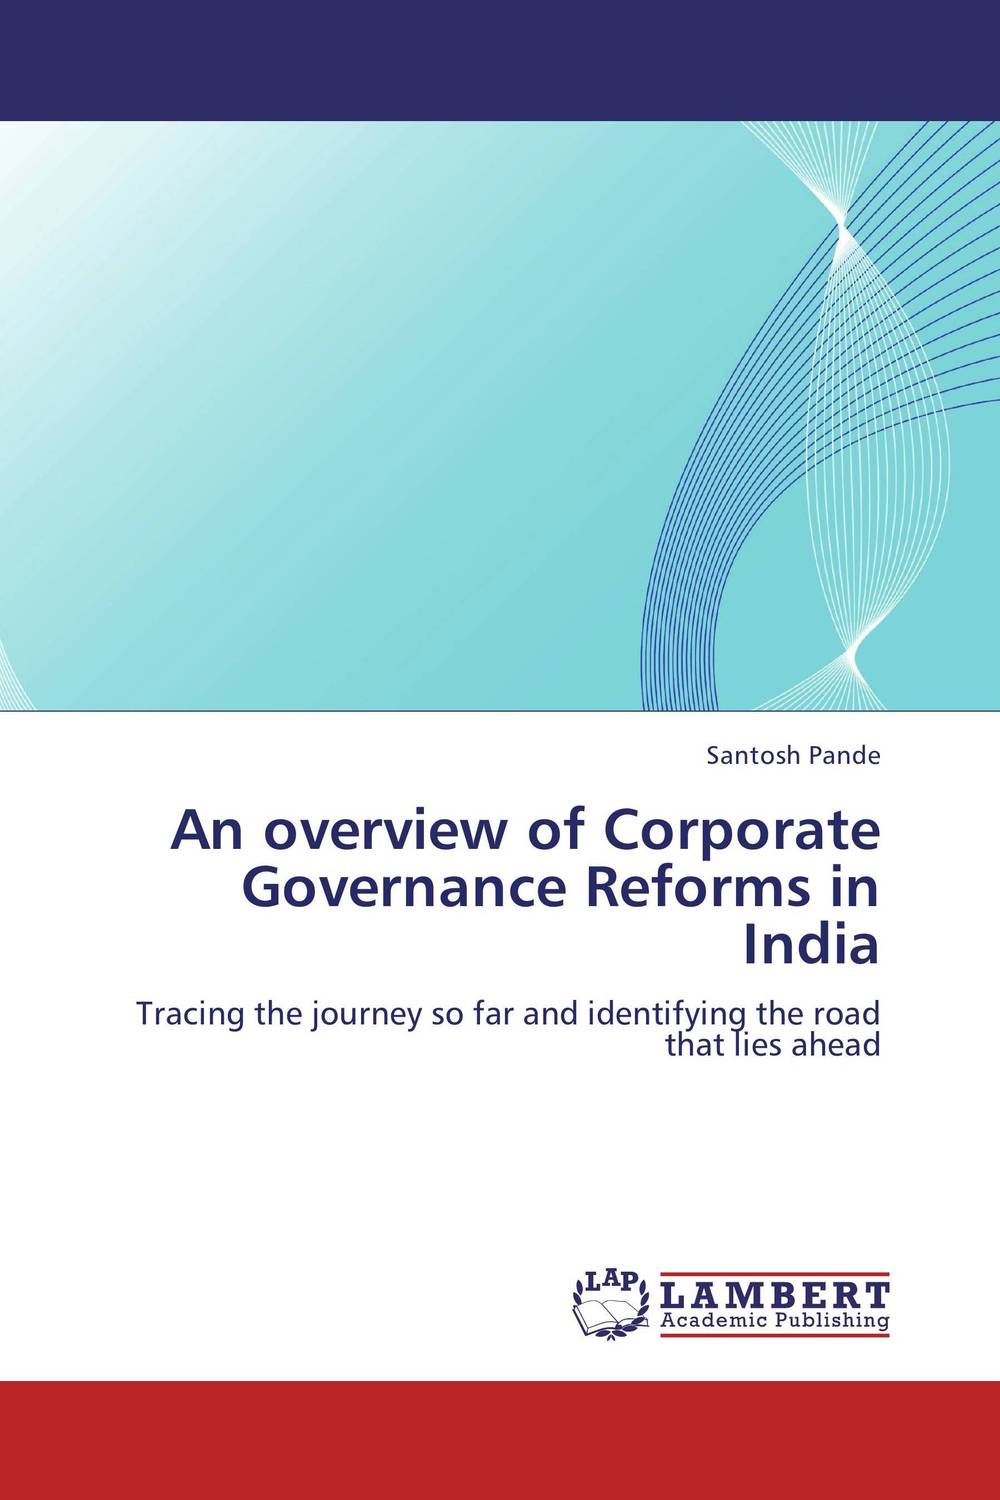 An overview of Corporate Governance Reforms in India corporate governance audit quality and opportunistic earnings